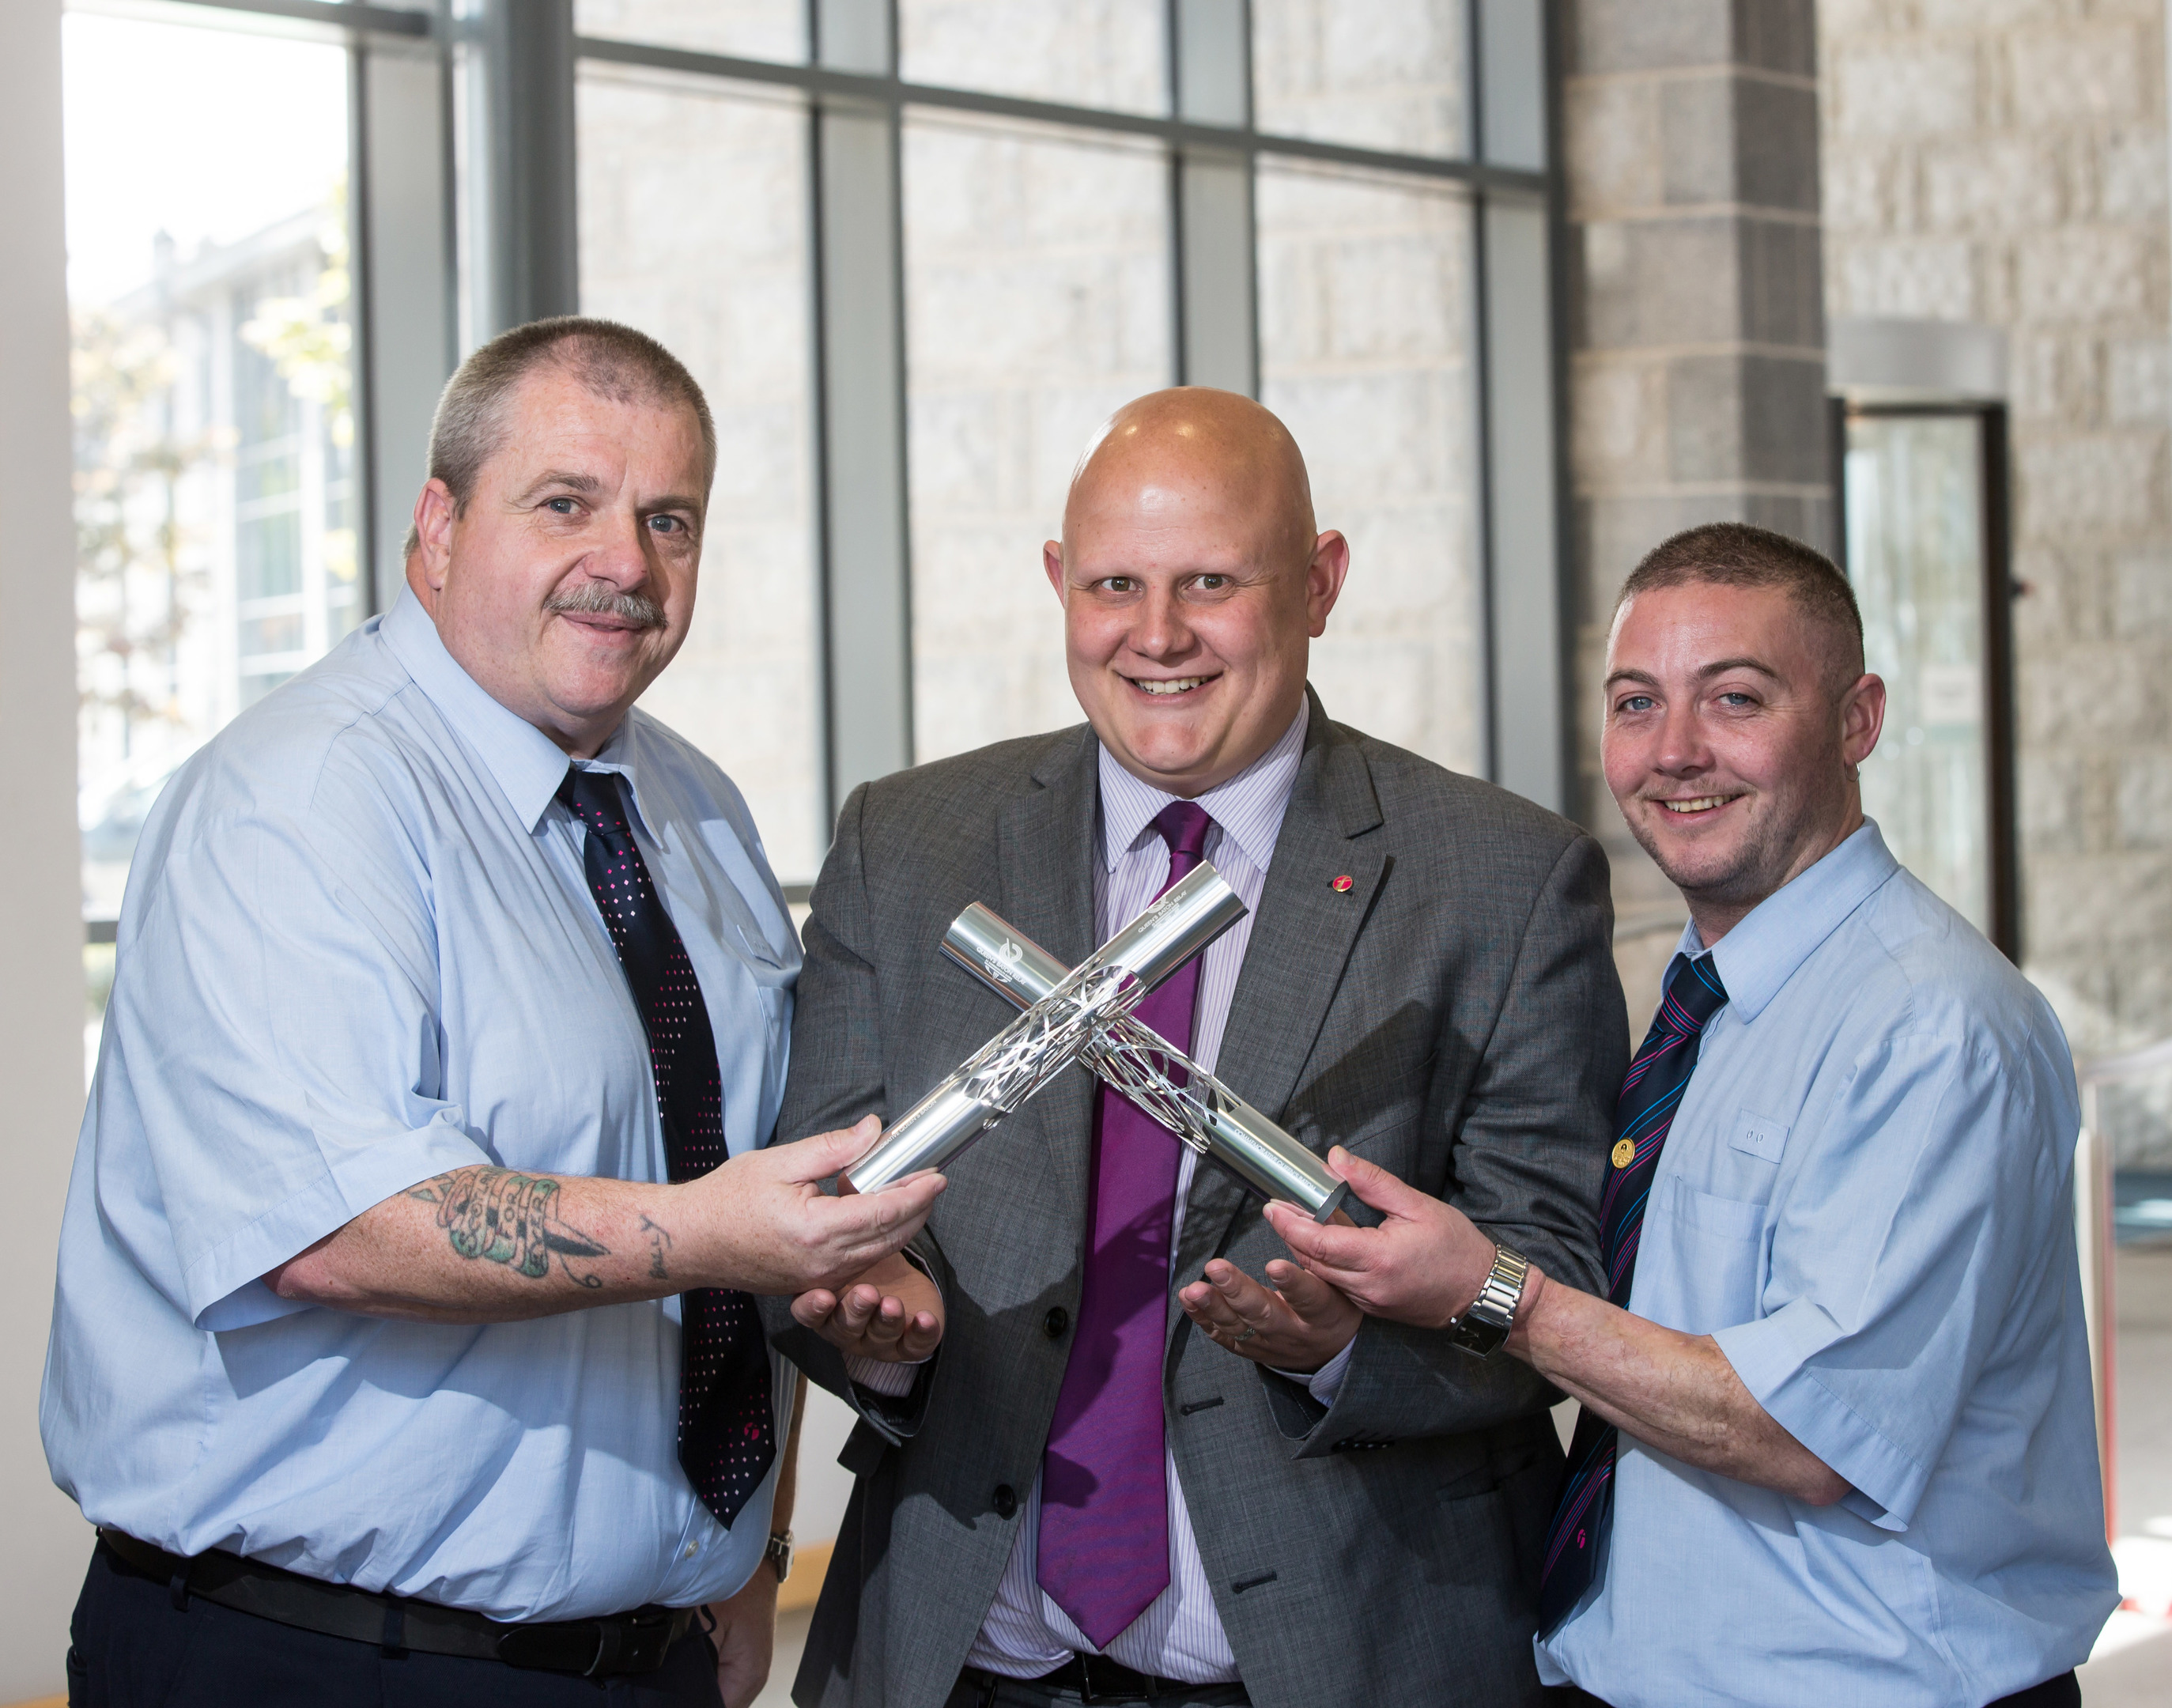 PICTURES FOR YOU FIRST MAGAZINE AT ABERDEEN BUS DEPOT. PICTURE SHOWS DRIVERS ANDREW BALLANTYNE (LEFT) AND SHANE MITCHELL (RIGHT) BEING PRESENTED WITH COMMEMORATIVE BATONS BY ABERDEEN MD DAVID PHILLIPS (CENTRE)AFTER THEY RAN IN THE COMMONWEALTH GAMES RELAY.